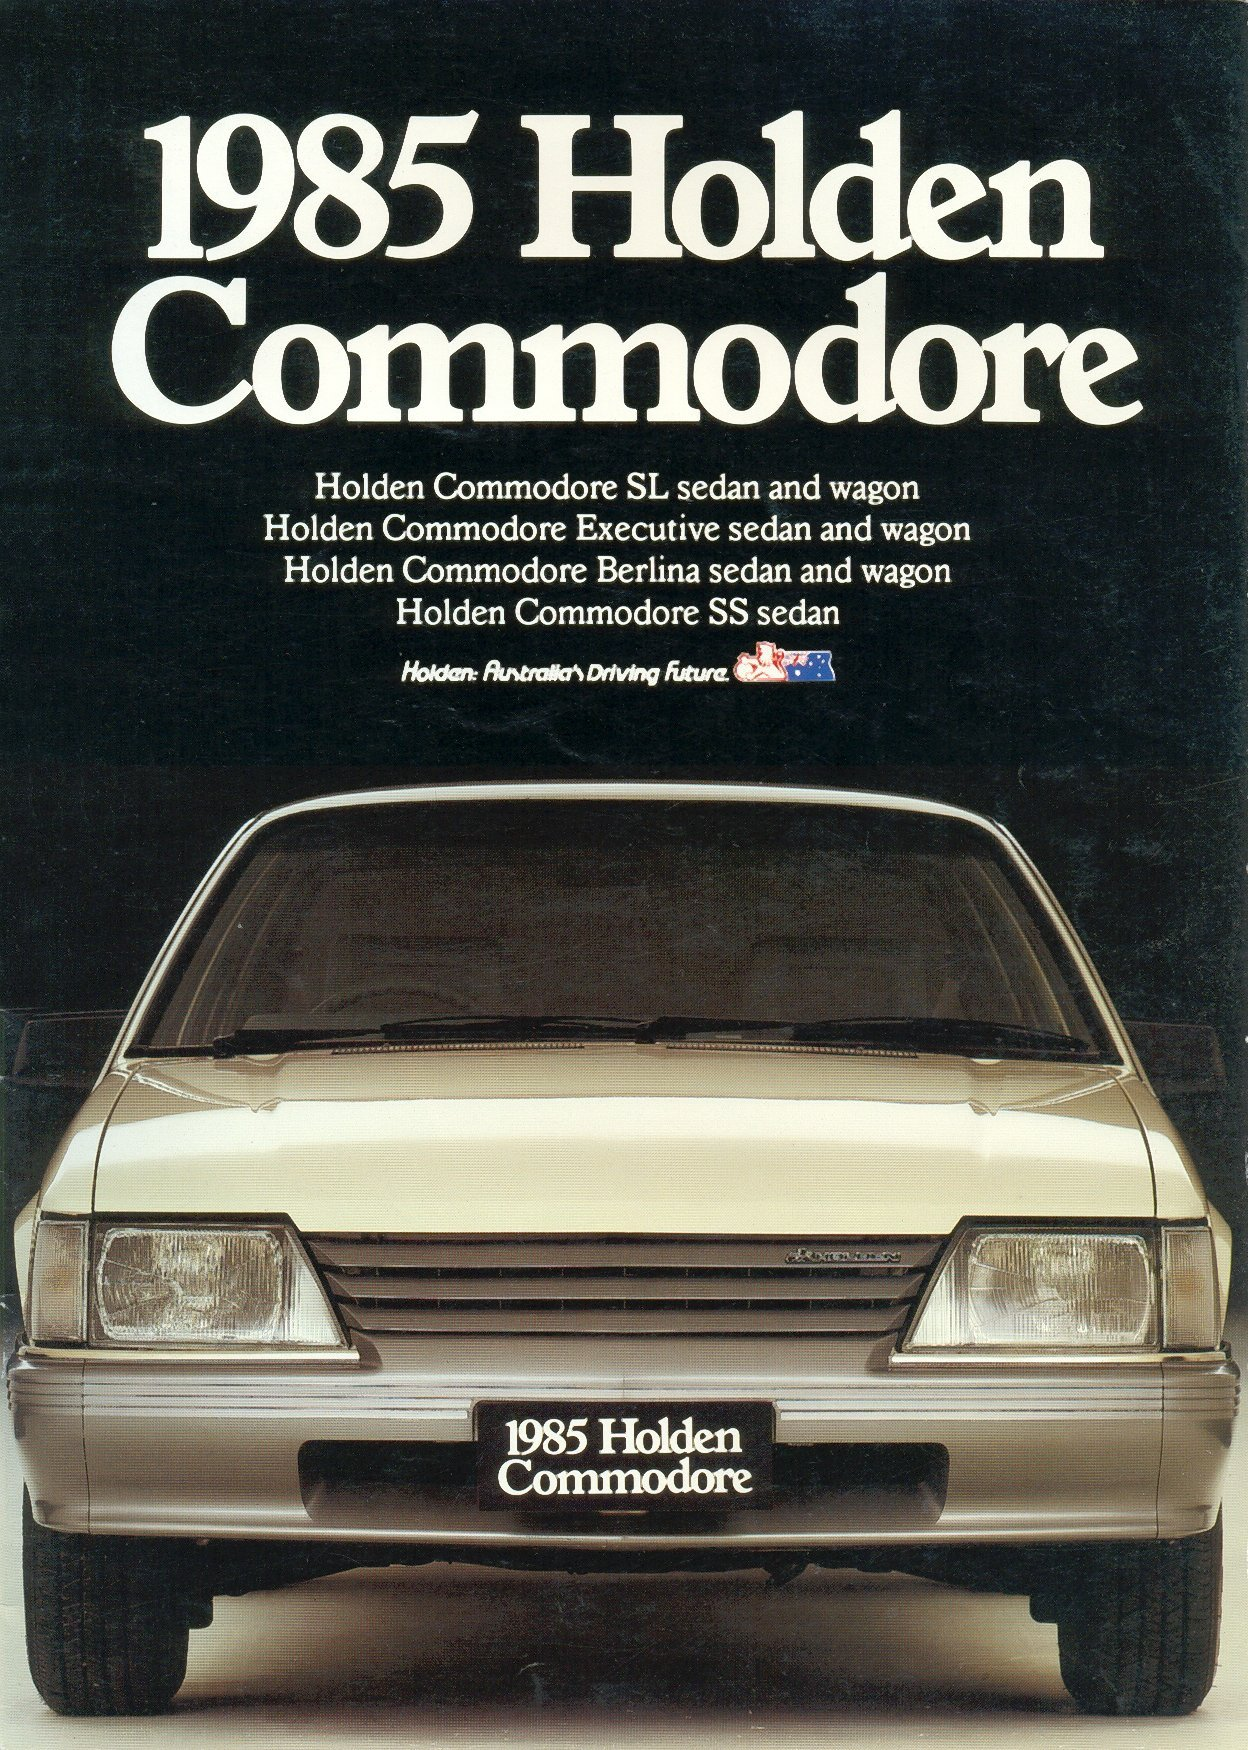 1985 Holden Commodore #18